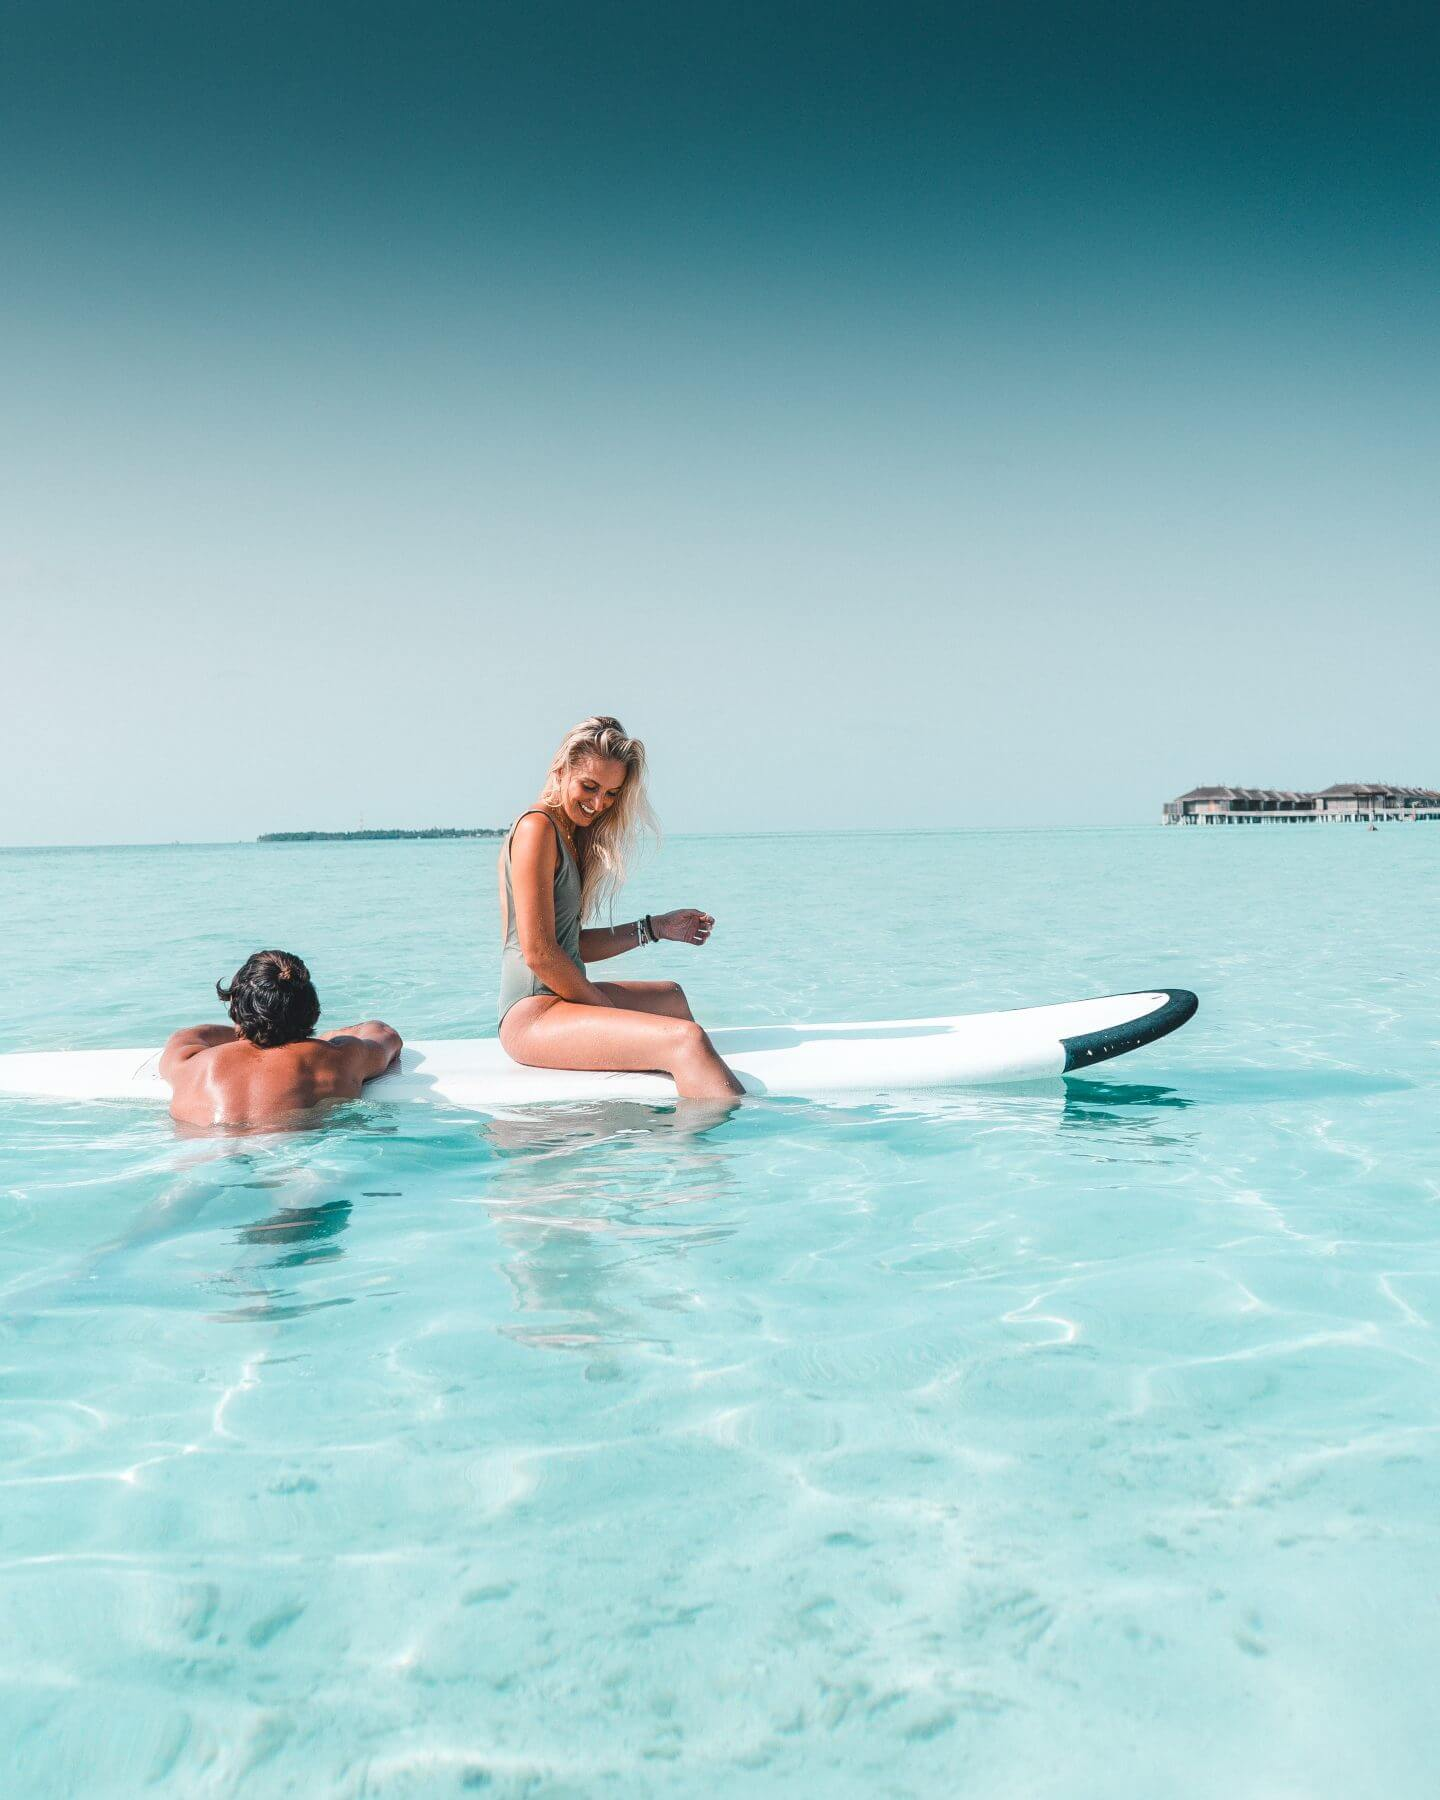 Maldivian blue water and surfing